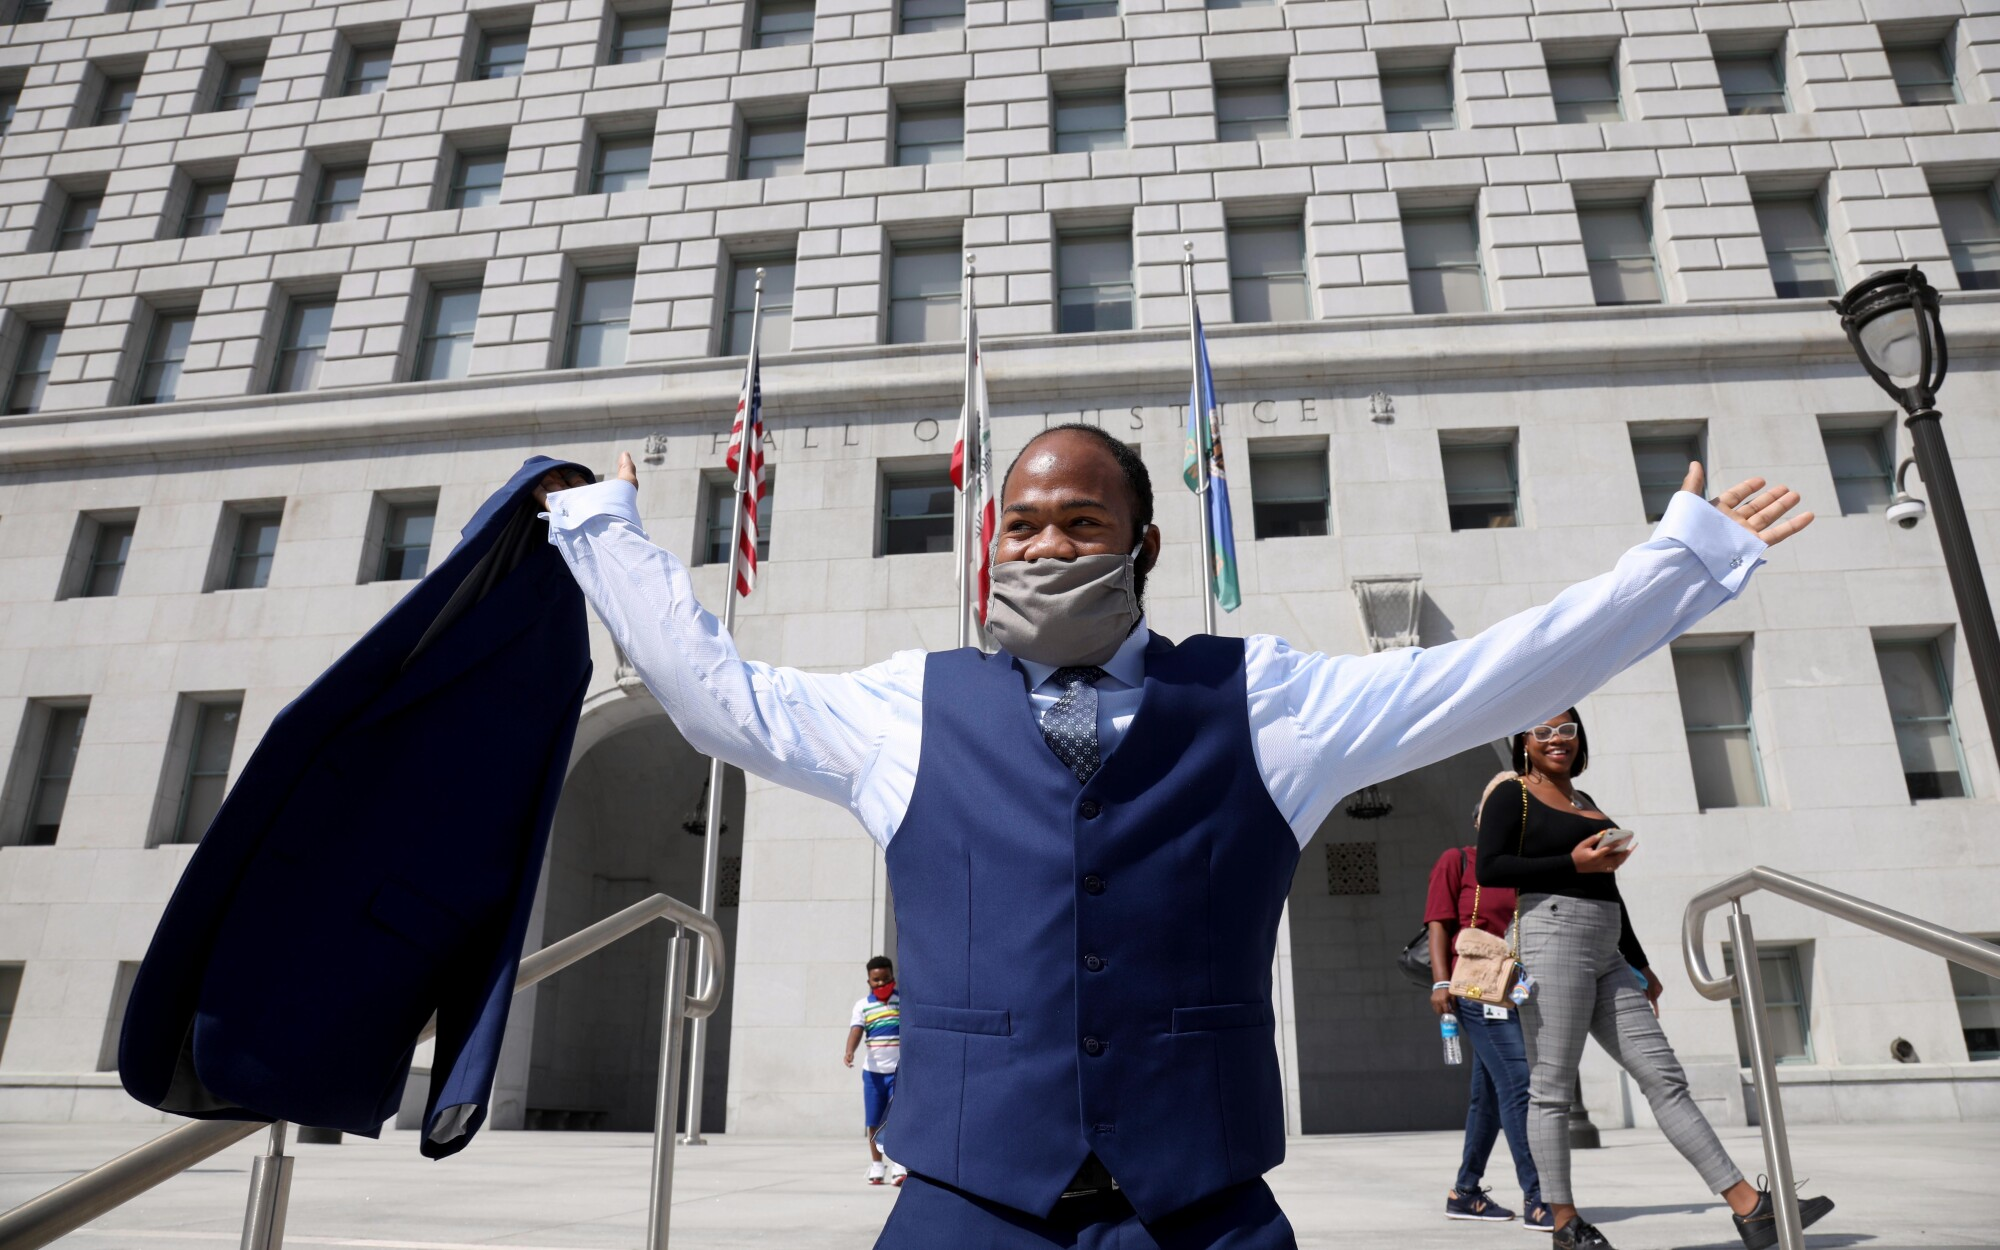 Derrick Harris raises his arms outside the Hall of Justice in Los Angeles.